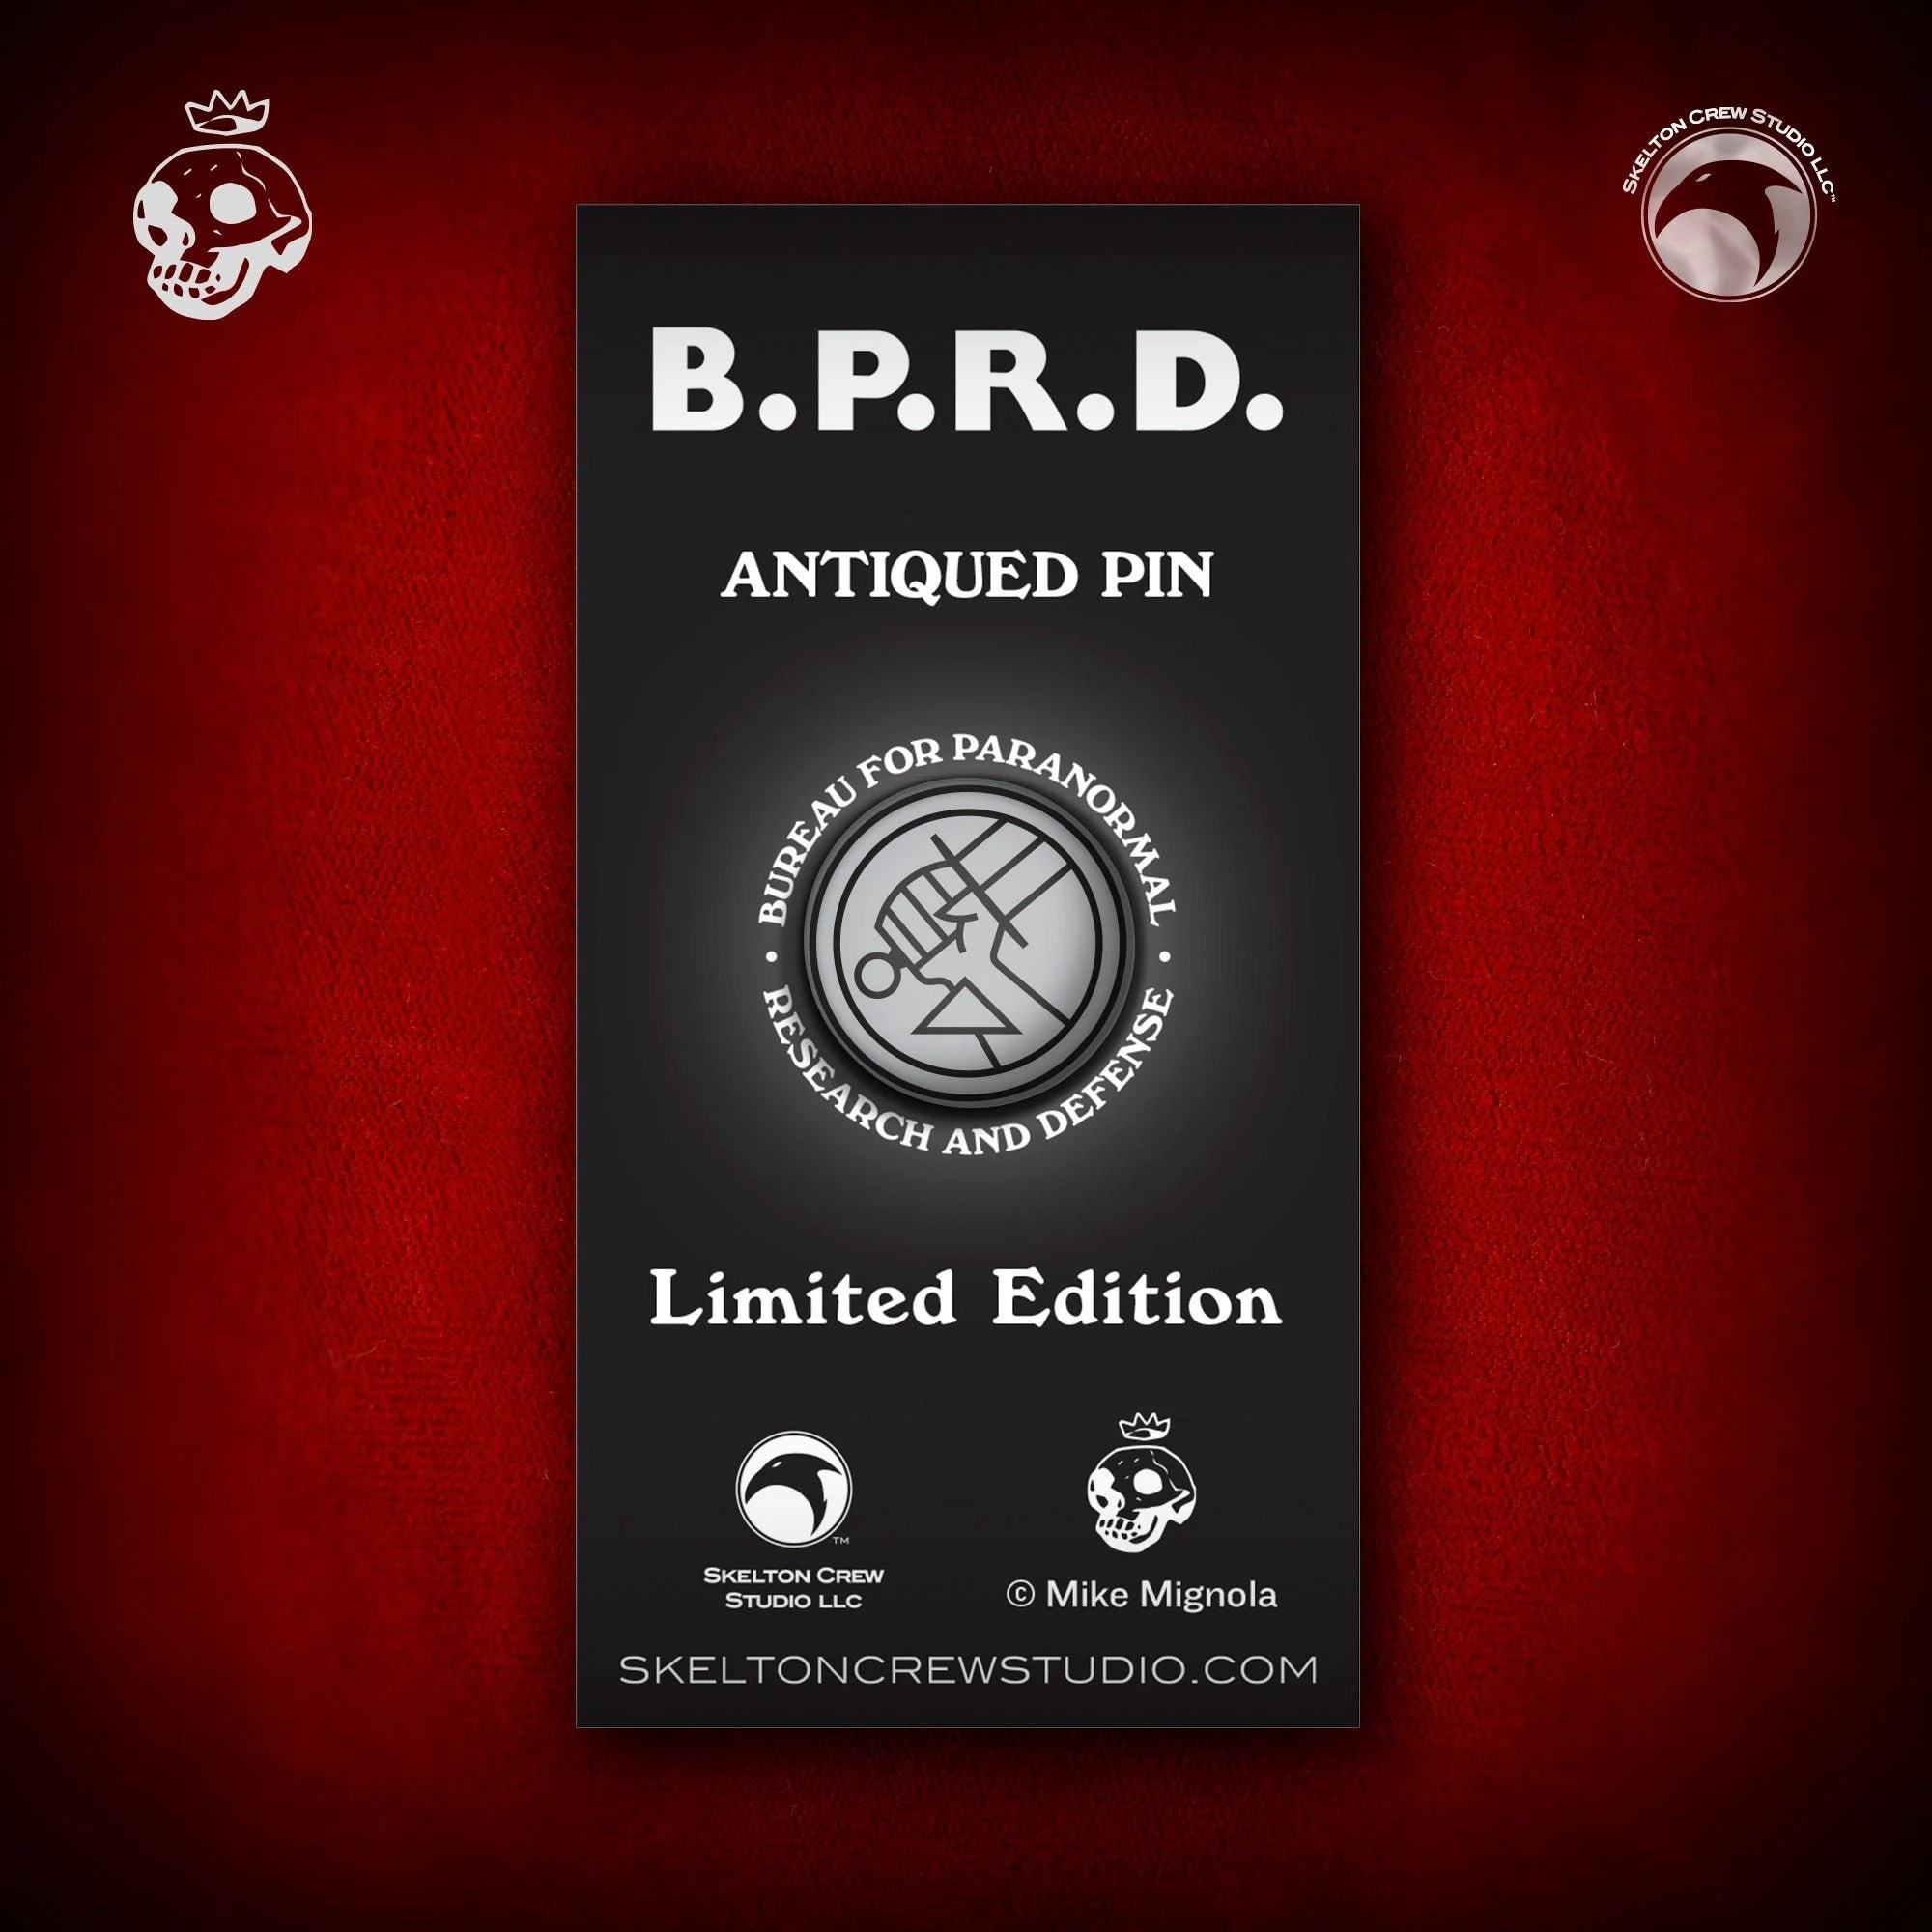 Design Bureau Llc Hellboy B P R D Limited Edition B P R D Antiqued Logo Pin